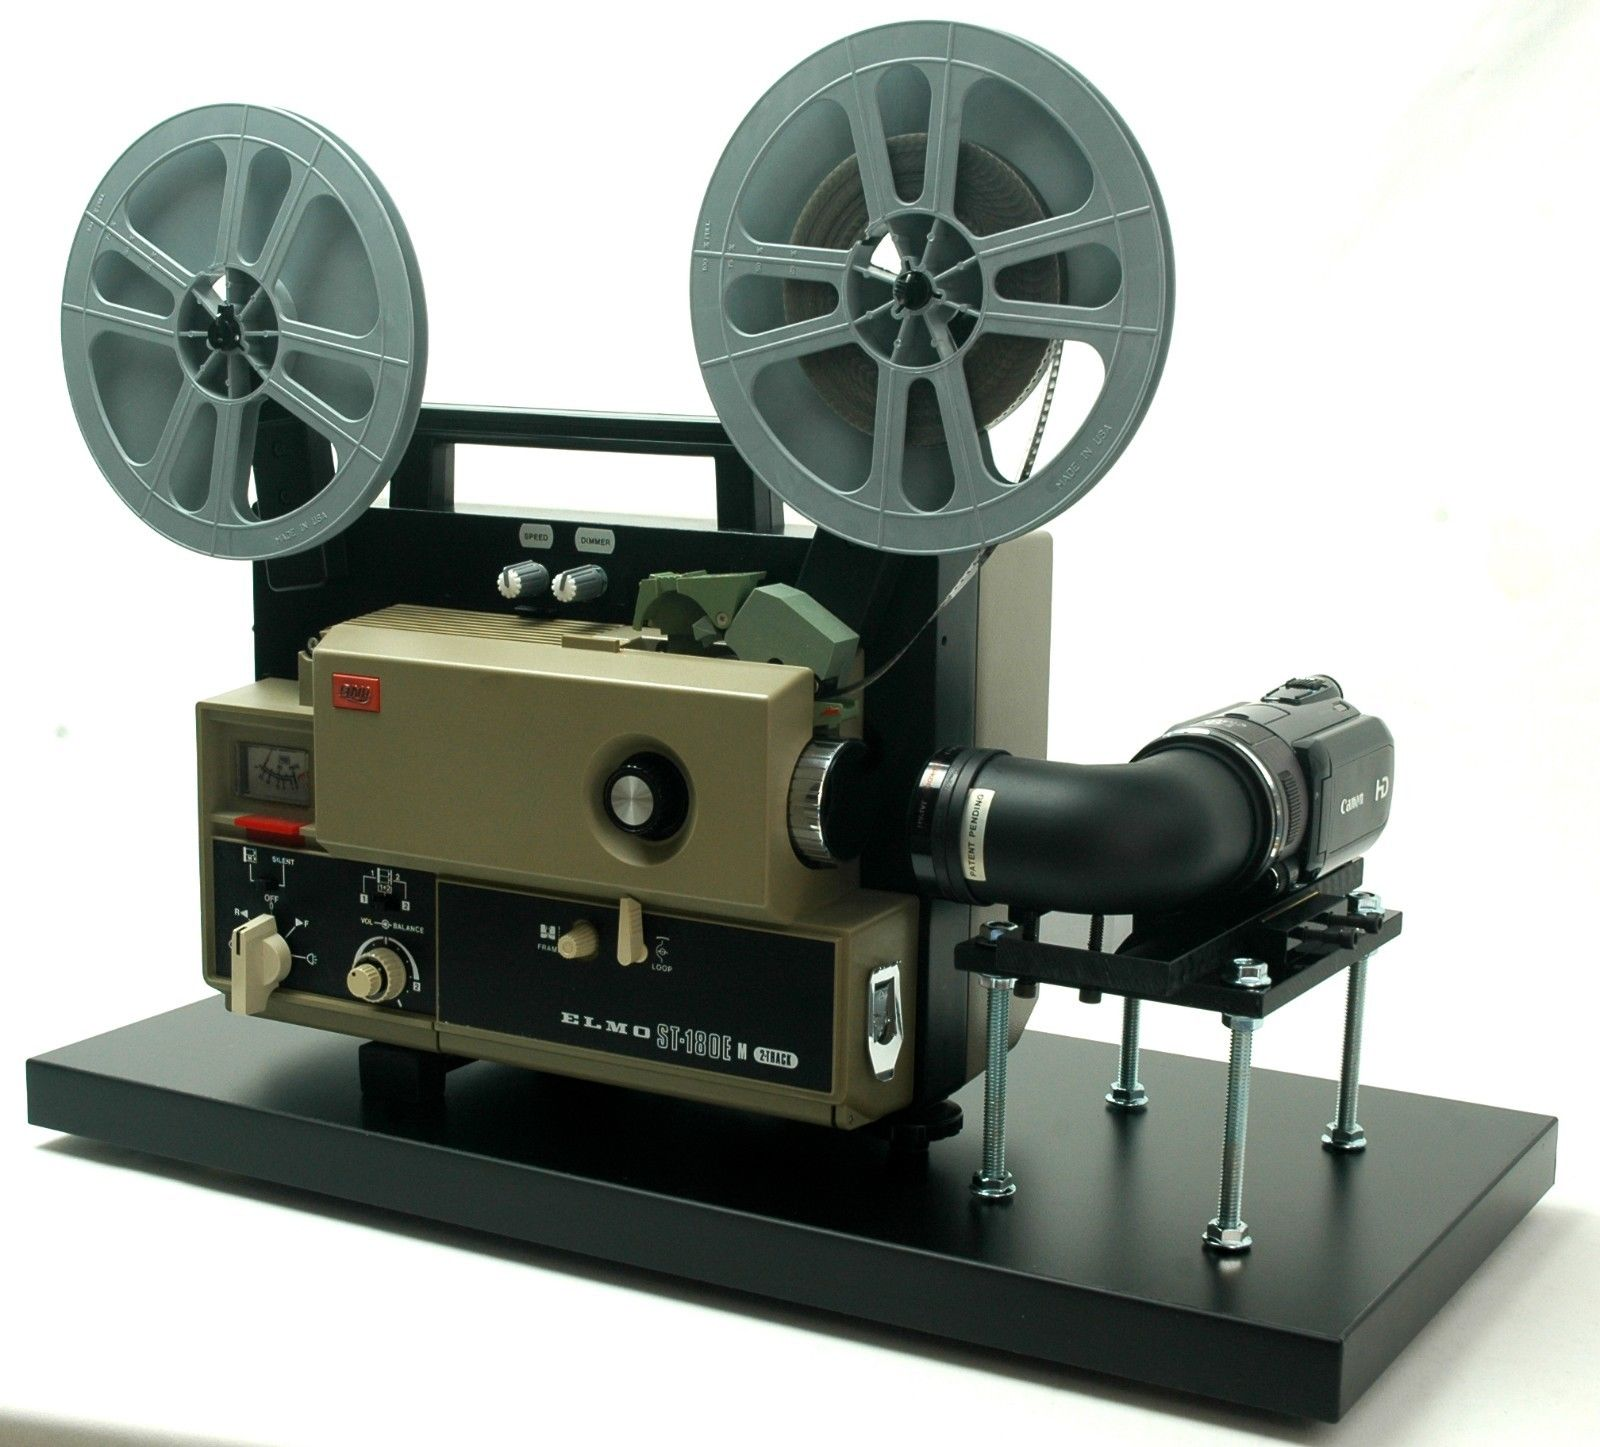 Image of Super 8 Film Projector